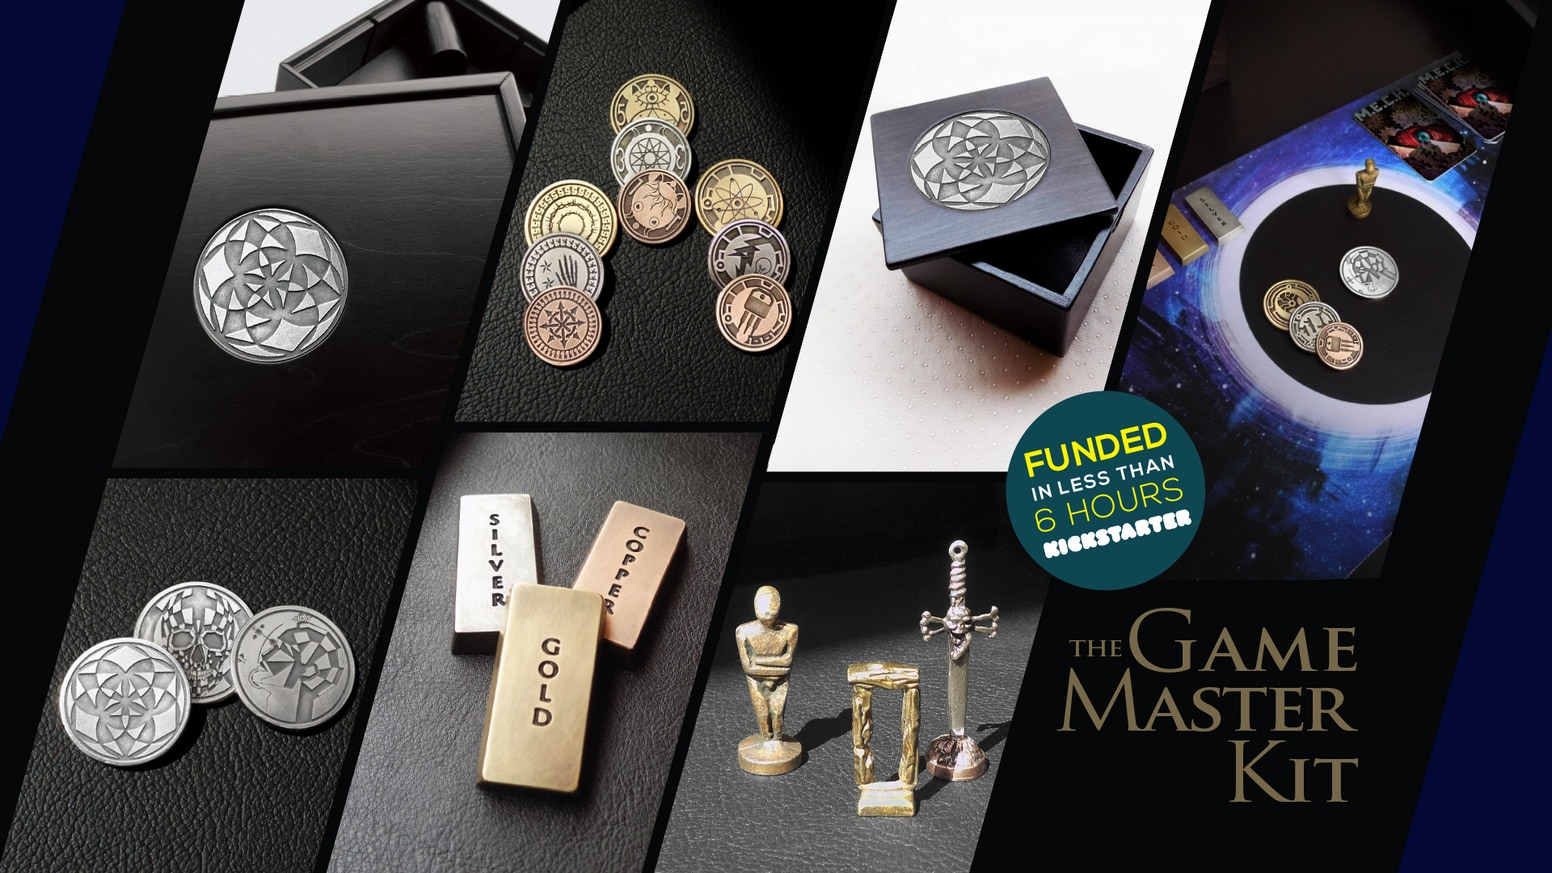 An All-in-one gaming collection. Premium metal coins, tokens, playmats, and pawns make your favorite game upgraded and new!